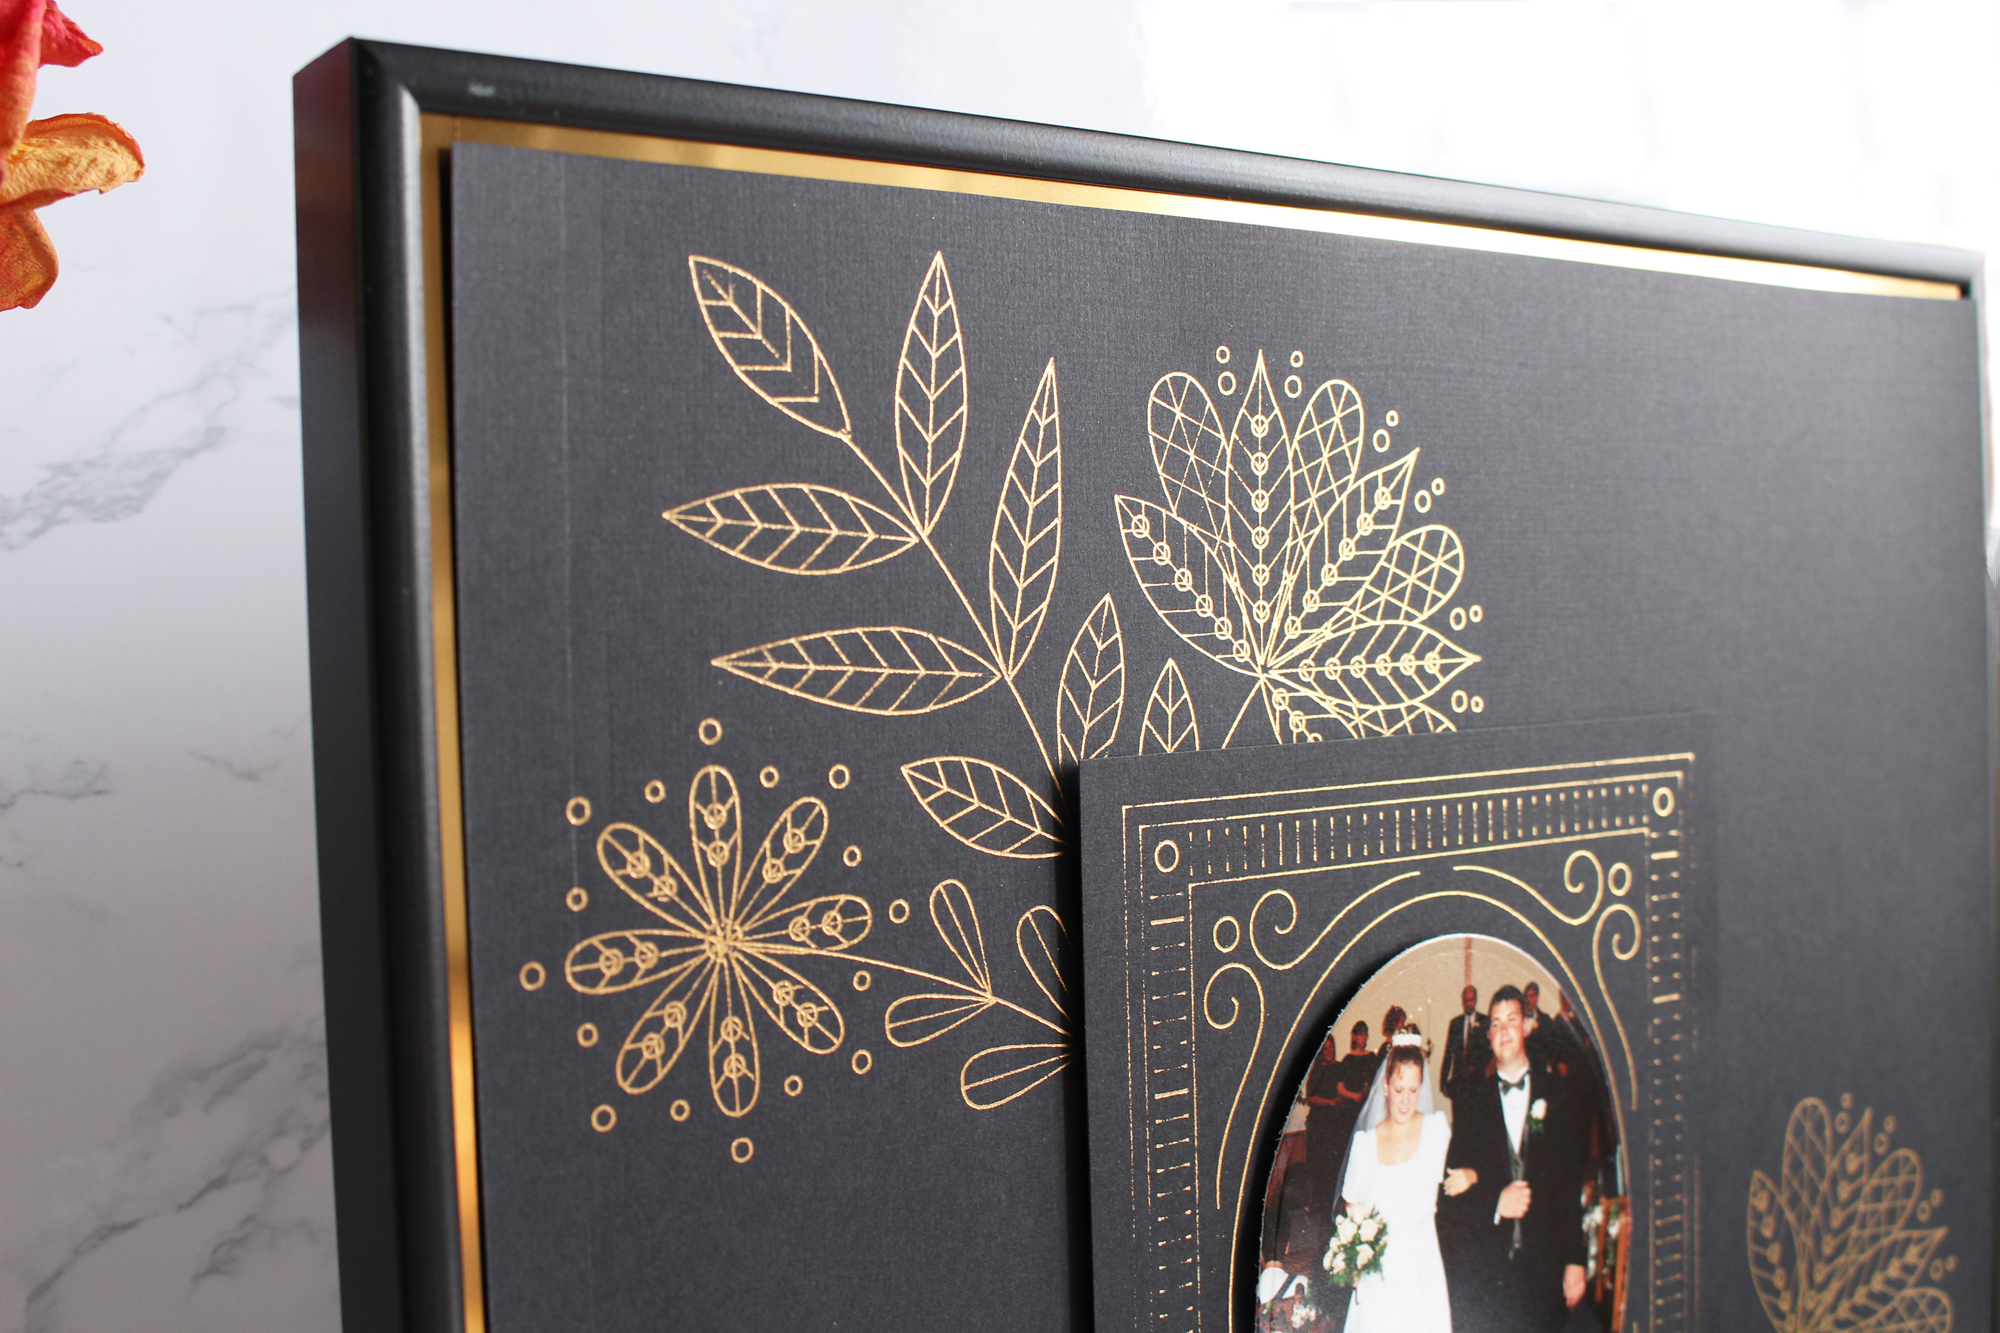 Foil Quill Photo Frame by Kimberly Crawford for We R Memory Keepers